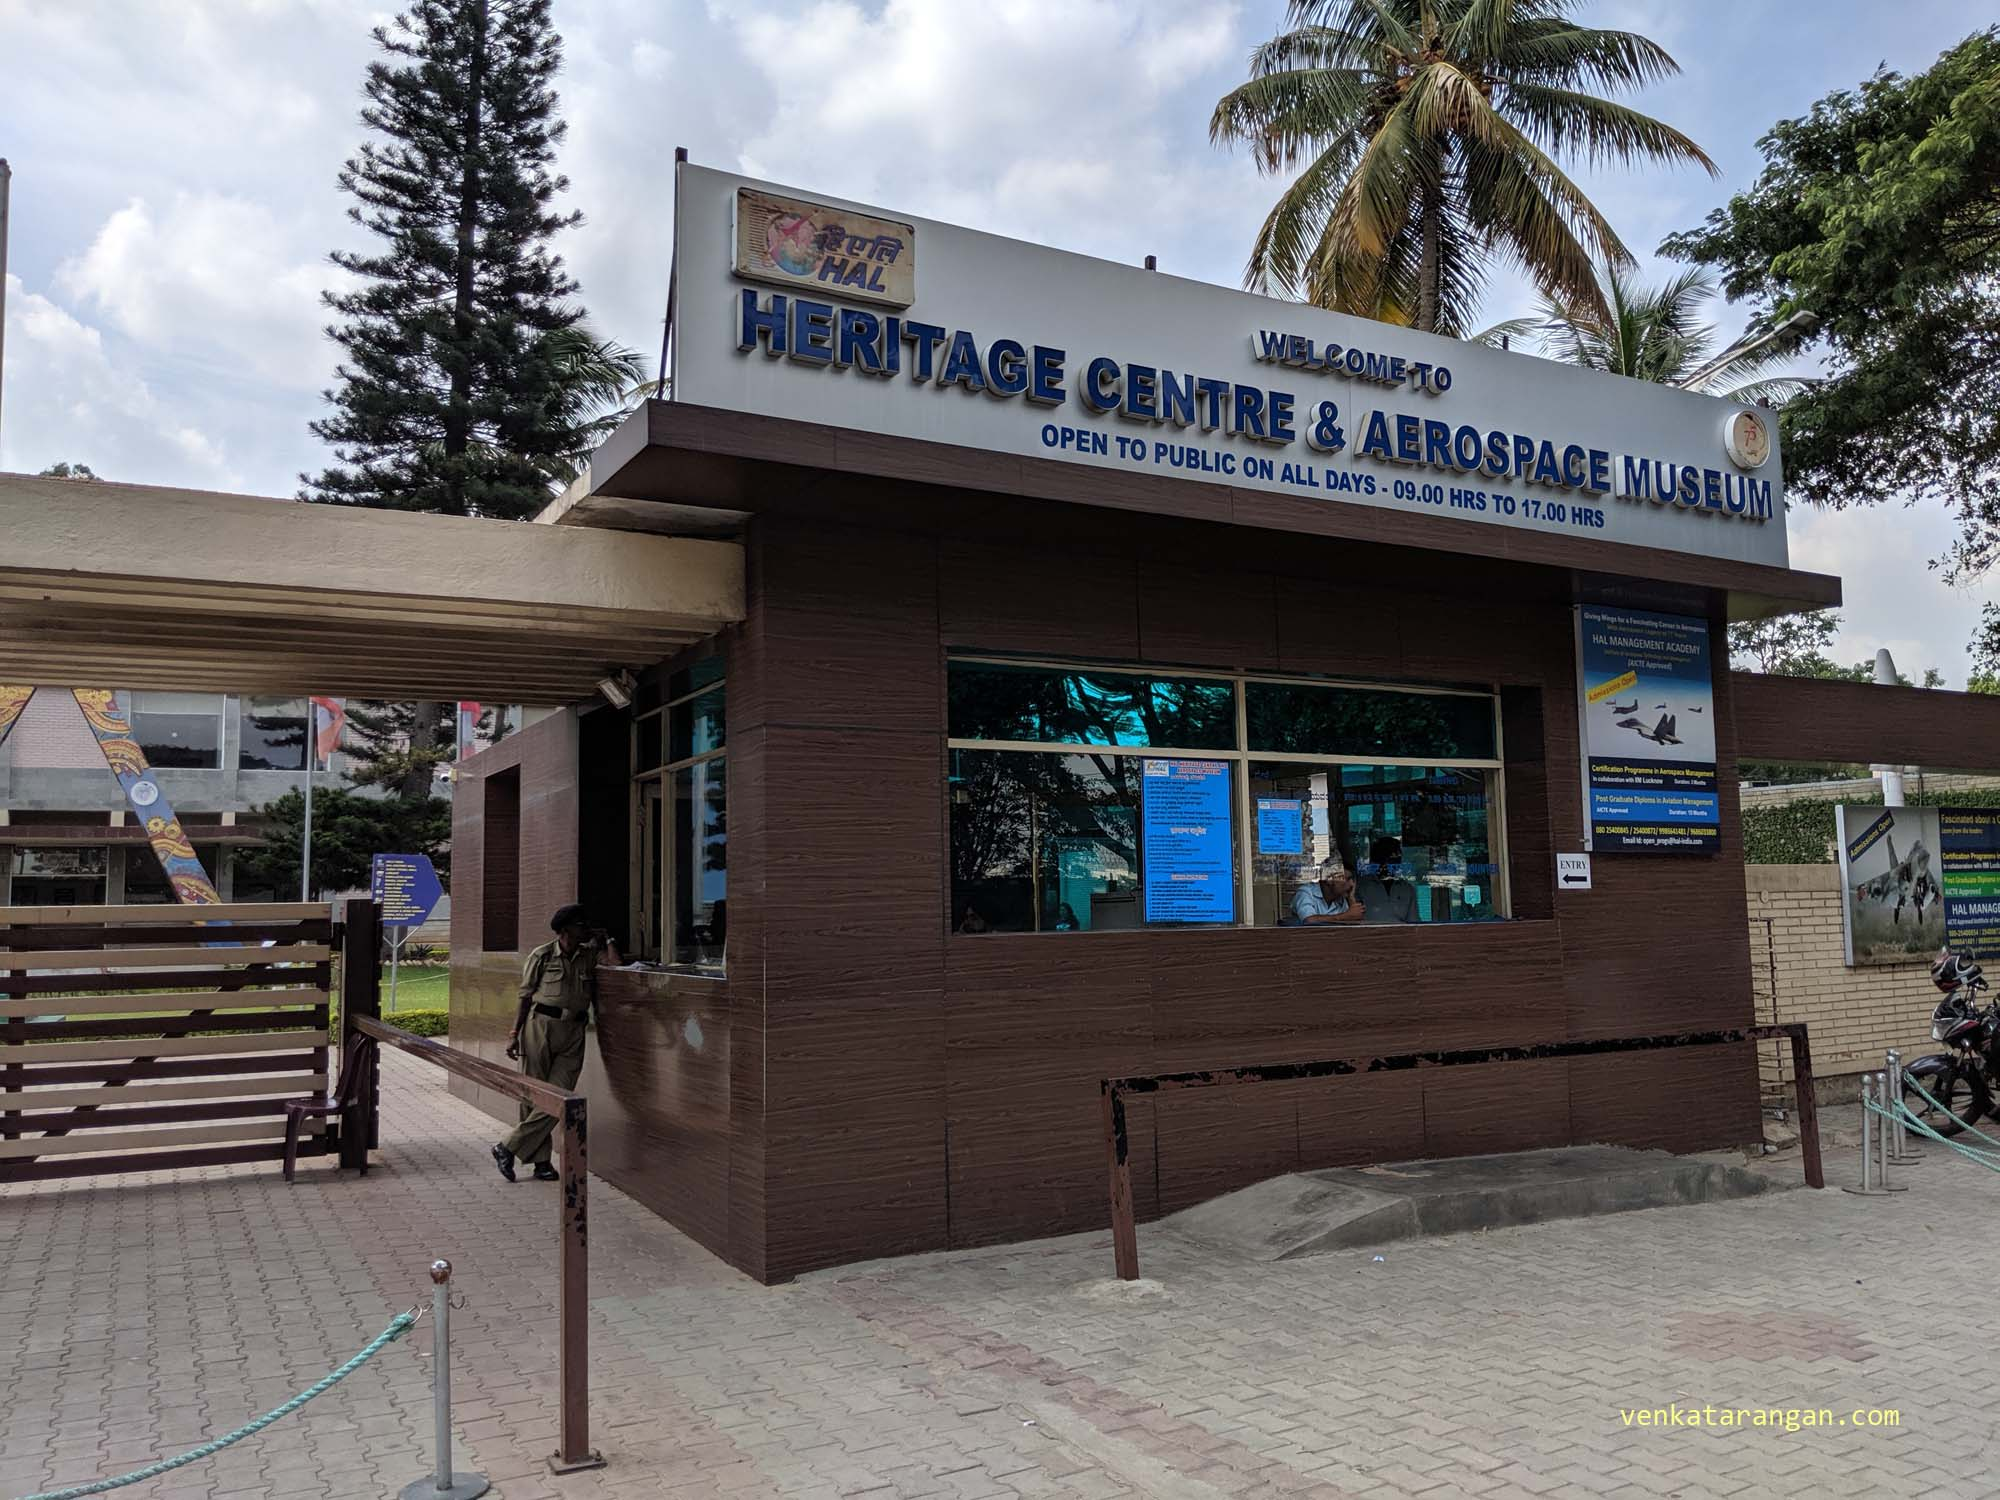 HAL Aerospace Museum, Bangalore